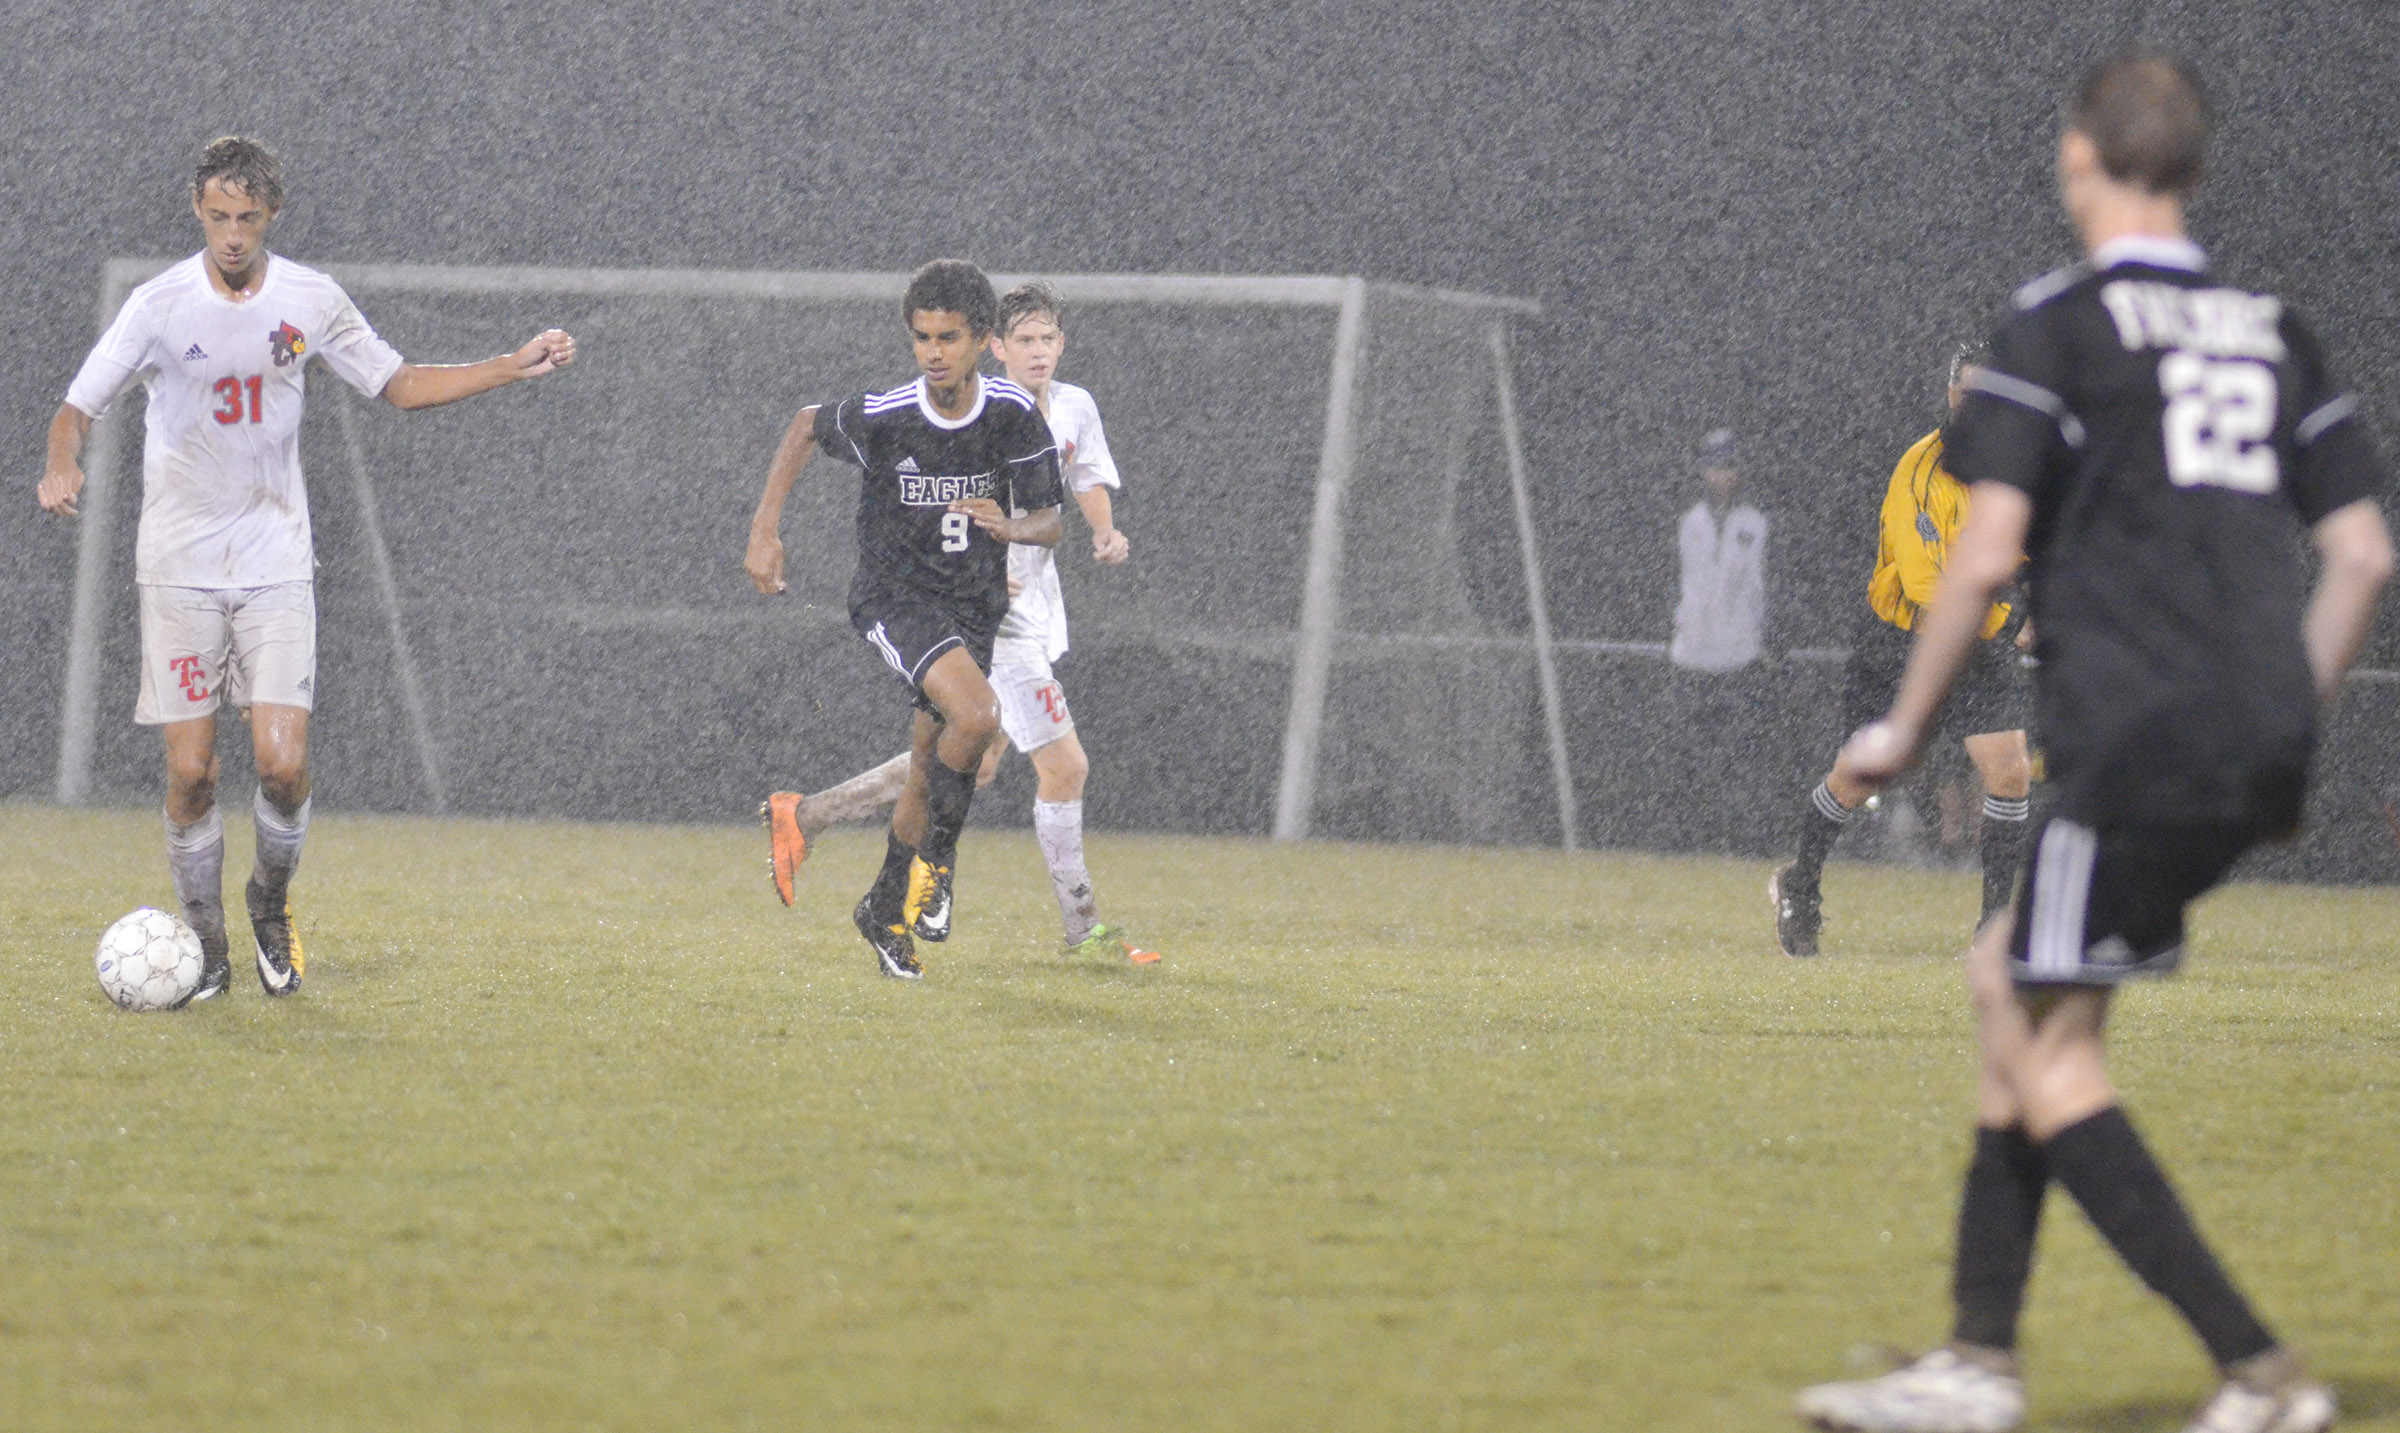 CHS sophomore David Silva runs down the field.